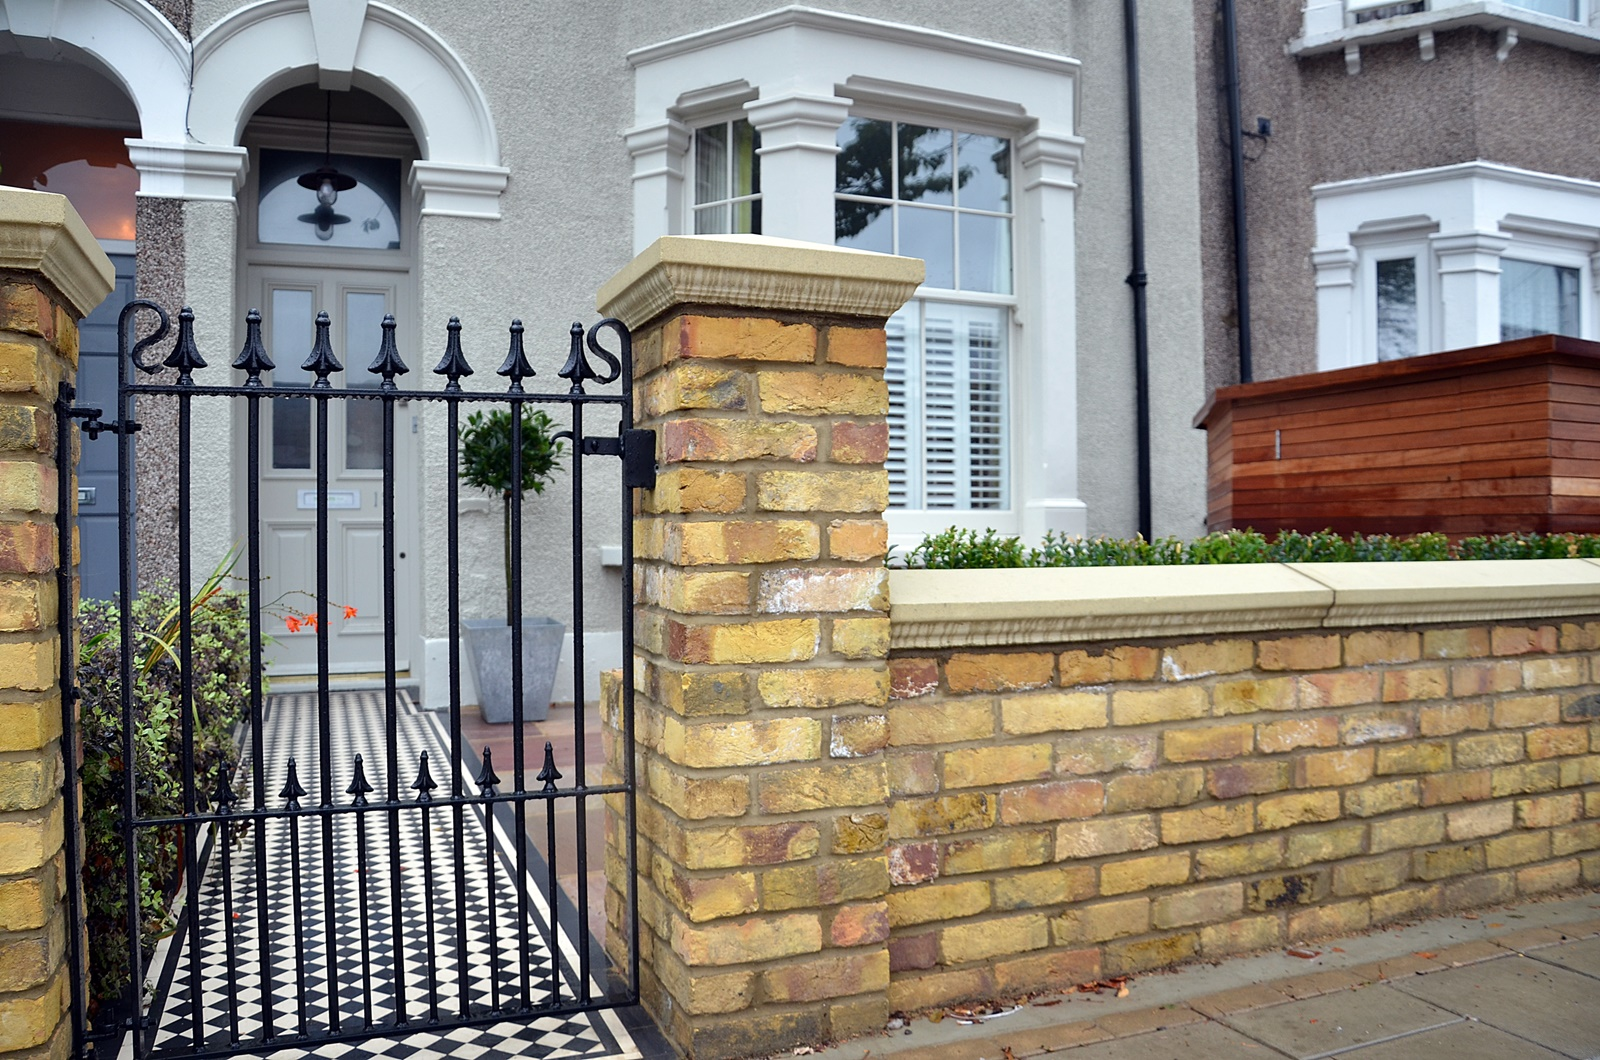 metal-gate-rails-imperial-brick-wall-cap-coping-paving-path-planting-london-clapham-balham-wandsworth-streatham